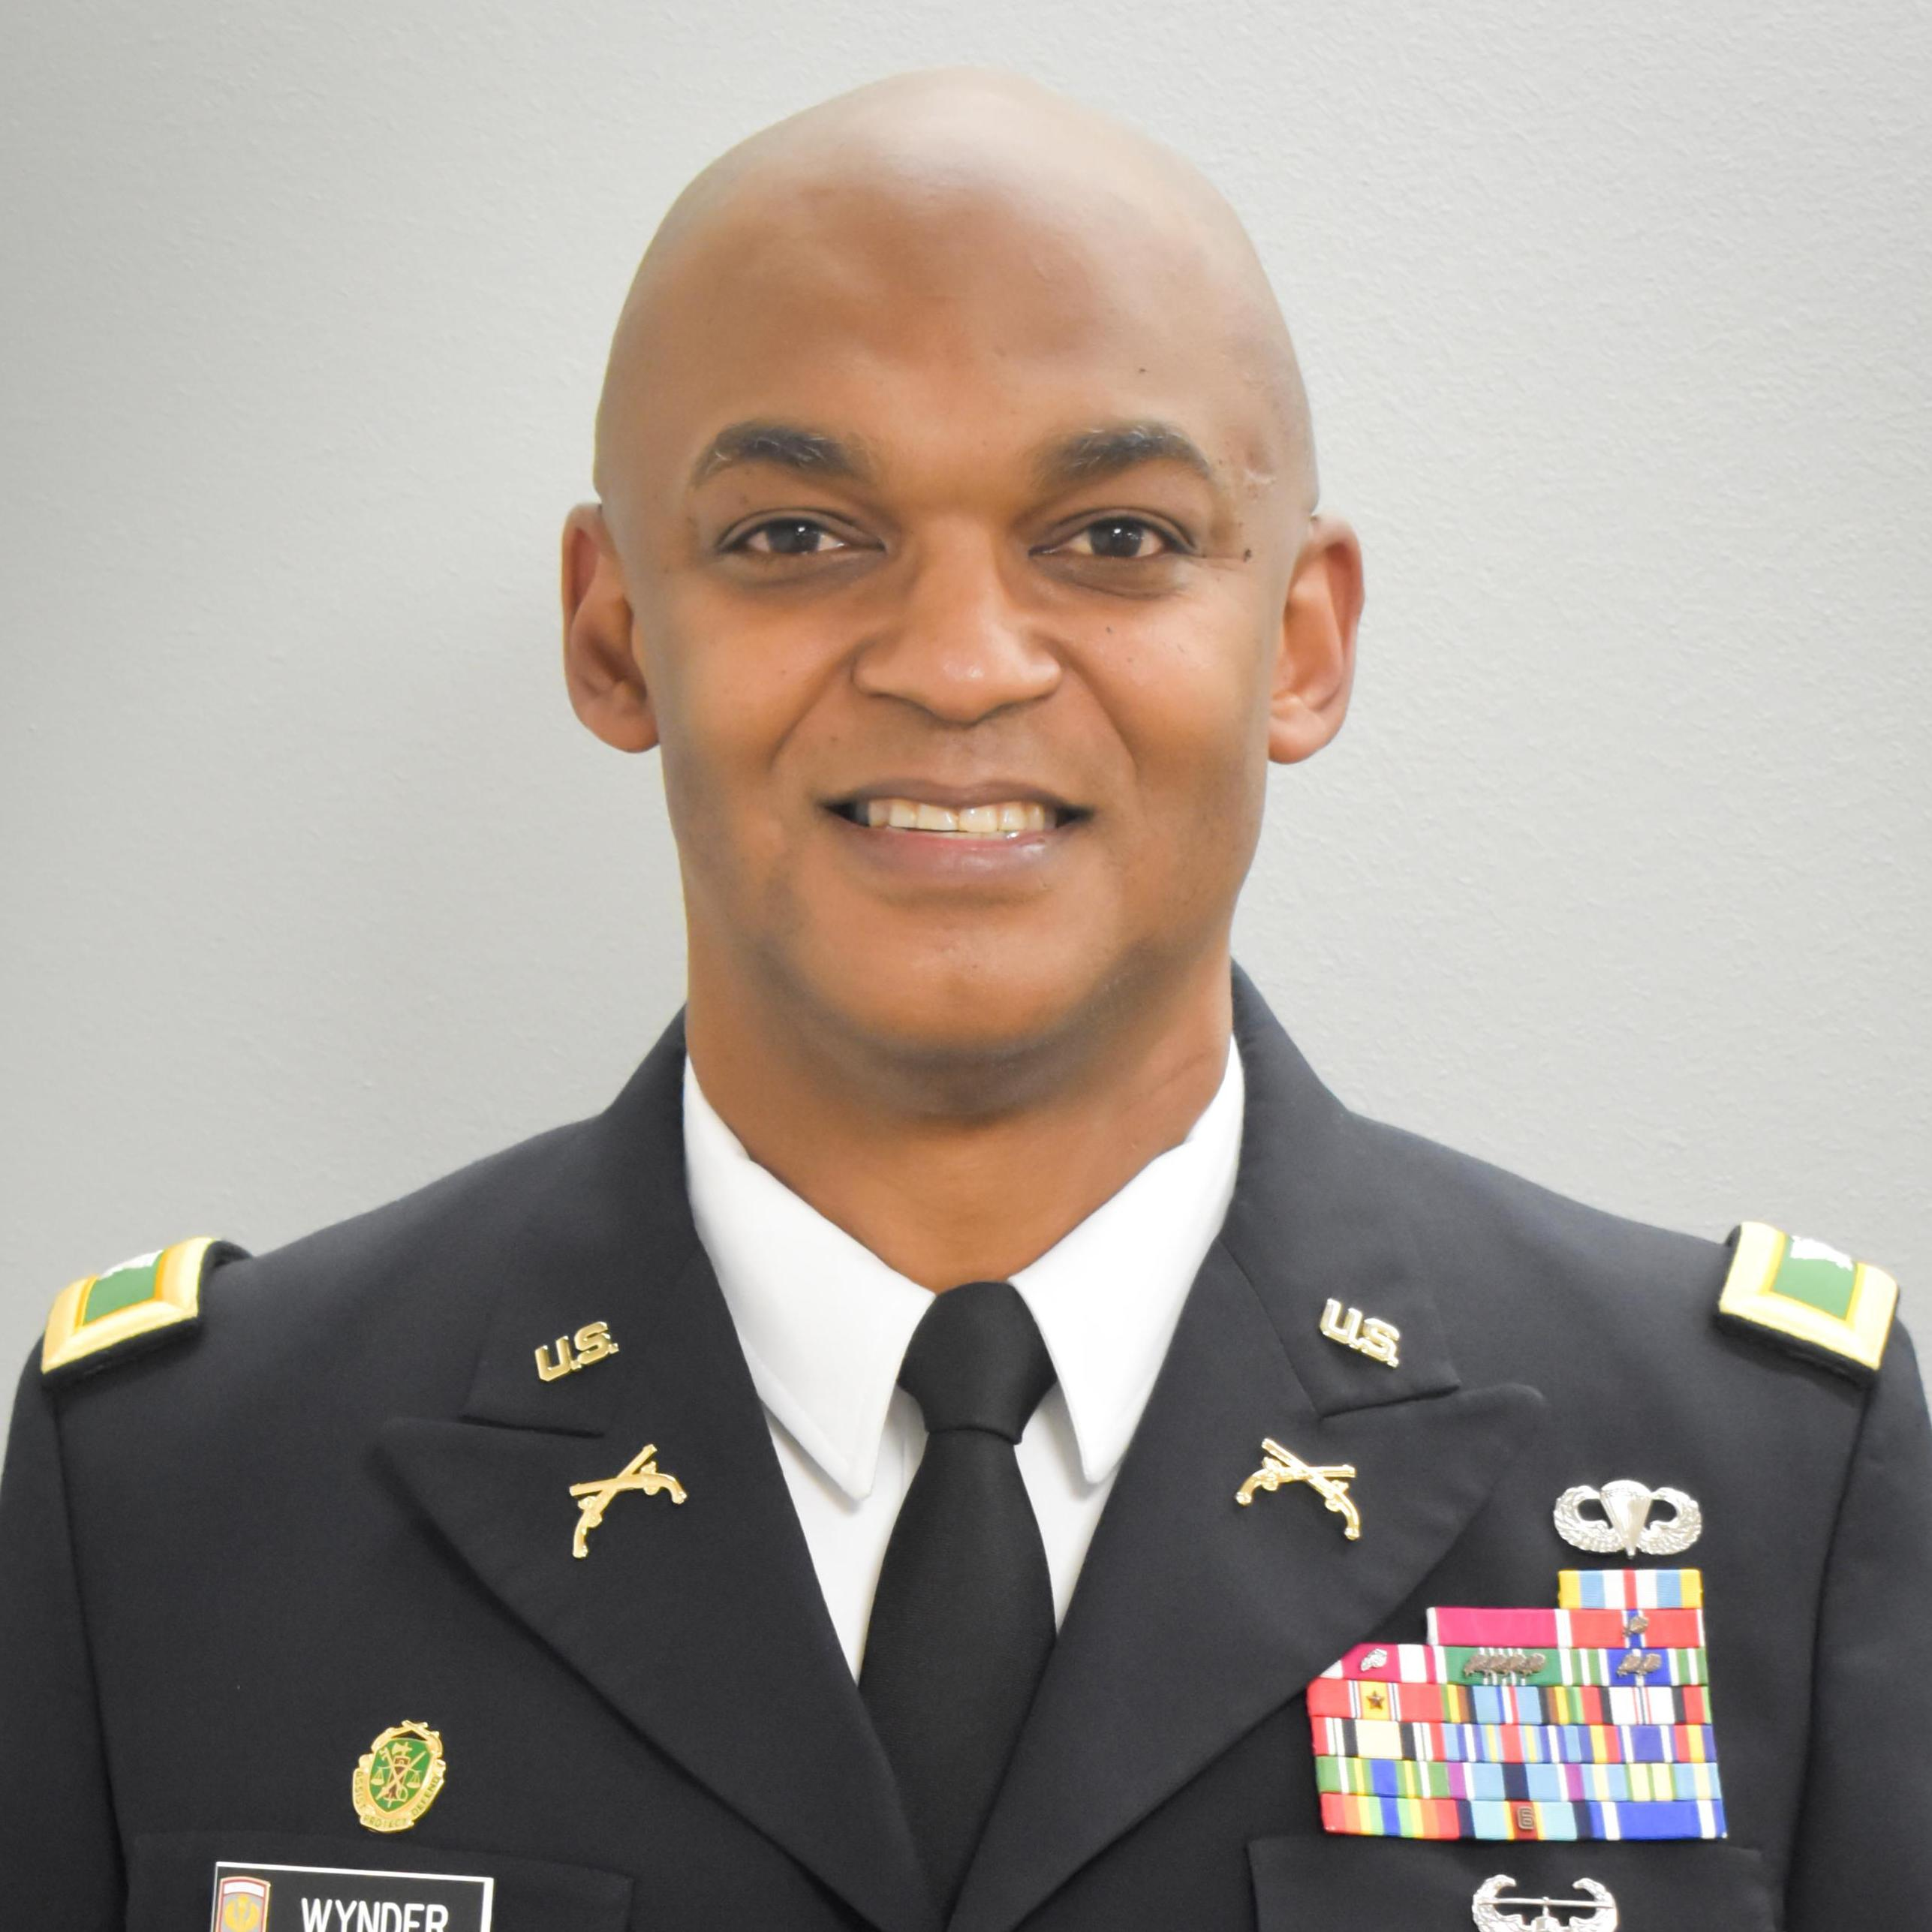 COL Chris  Wynder`s profile picture